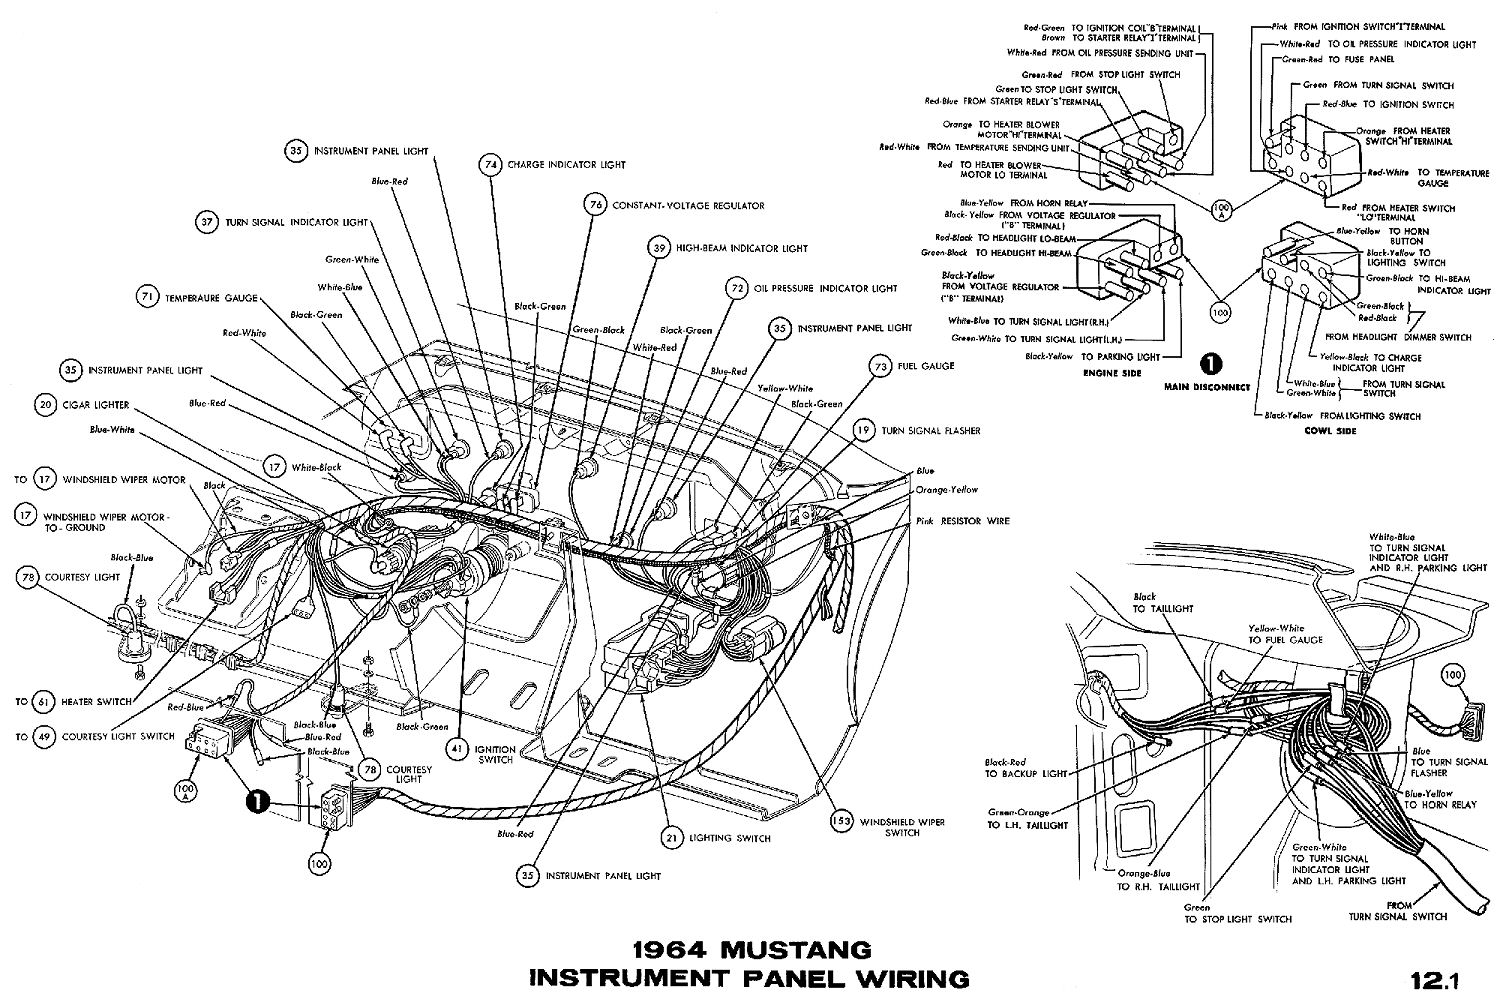 1964 Mustang Wiring Diagrams Average Joe Restoration 65 Wire Diagram Starting Instrument Cluster Connections